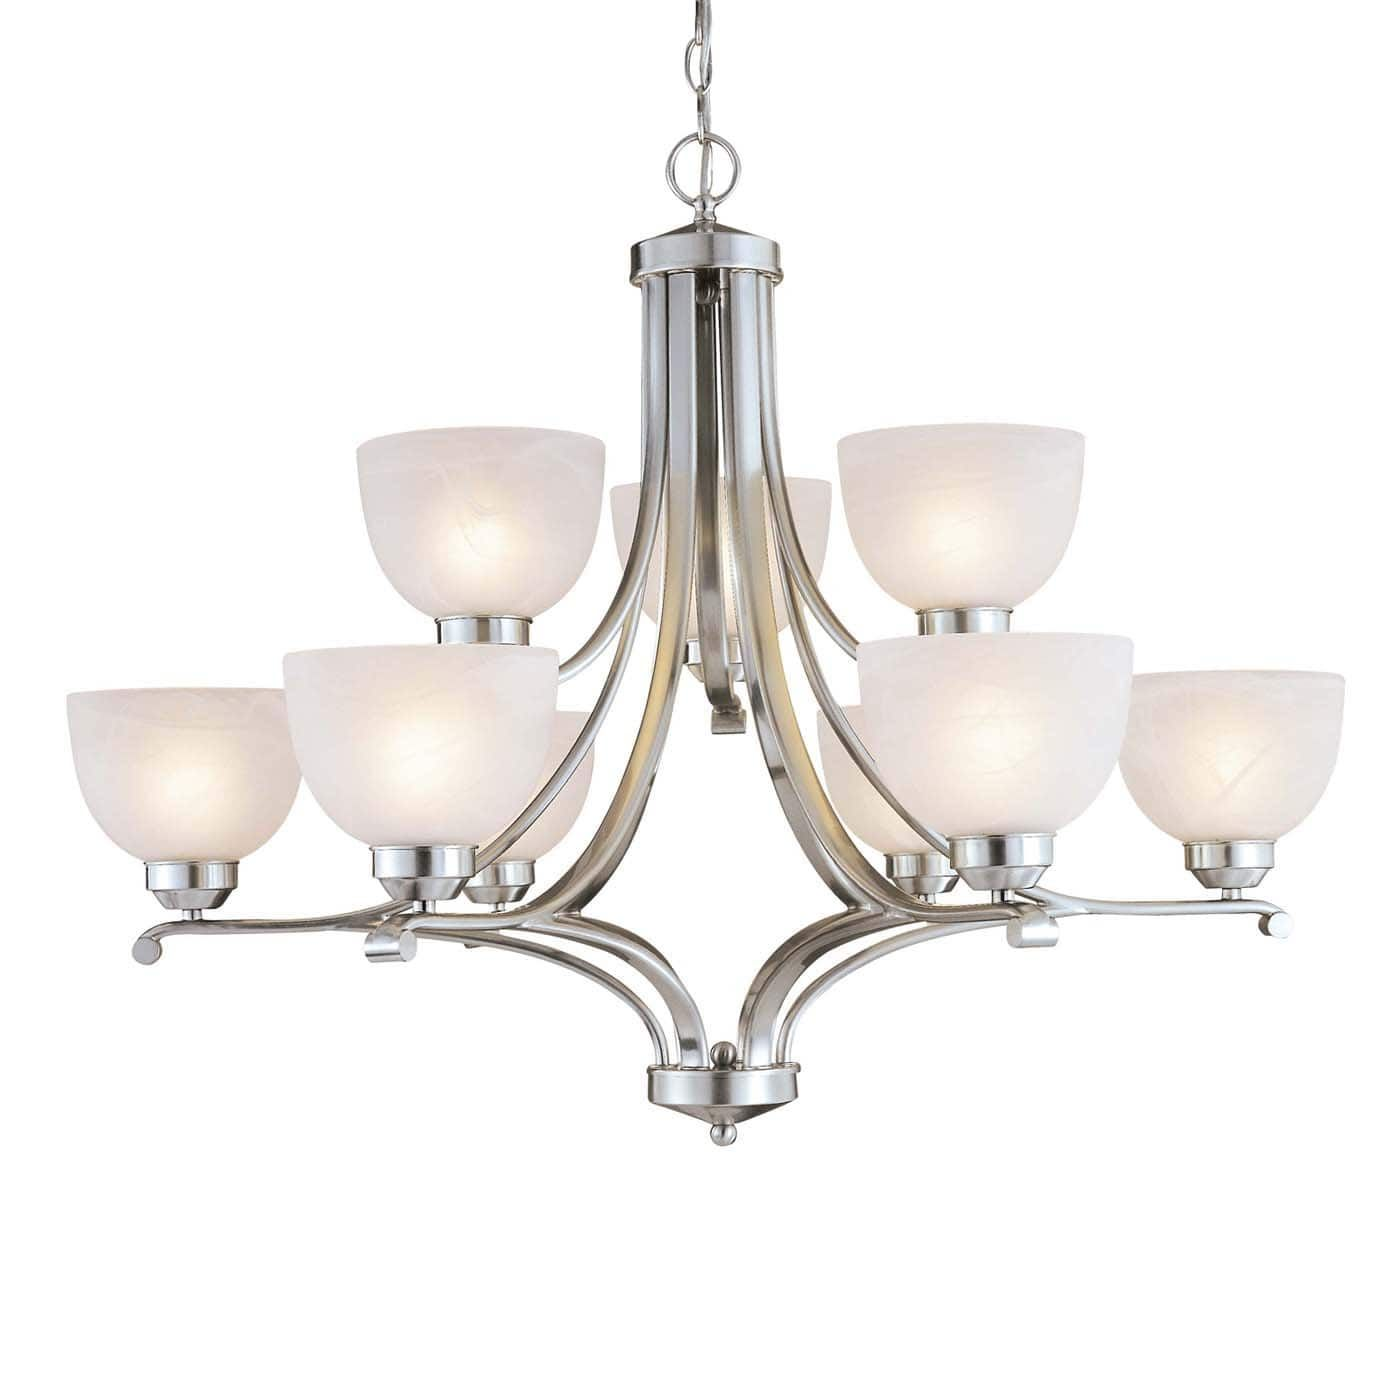 Shop minka lavery 1429 84 9 light paradox chandelier at the mine shop minka lavery 1429 84 9 light paradox chandelier at the mine browse our arubaitofo Images